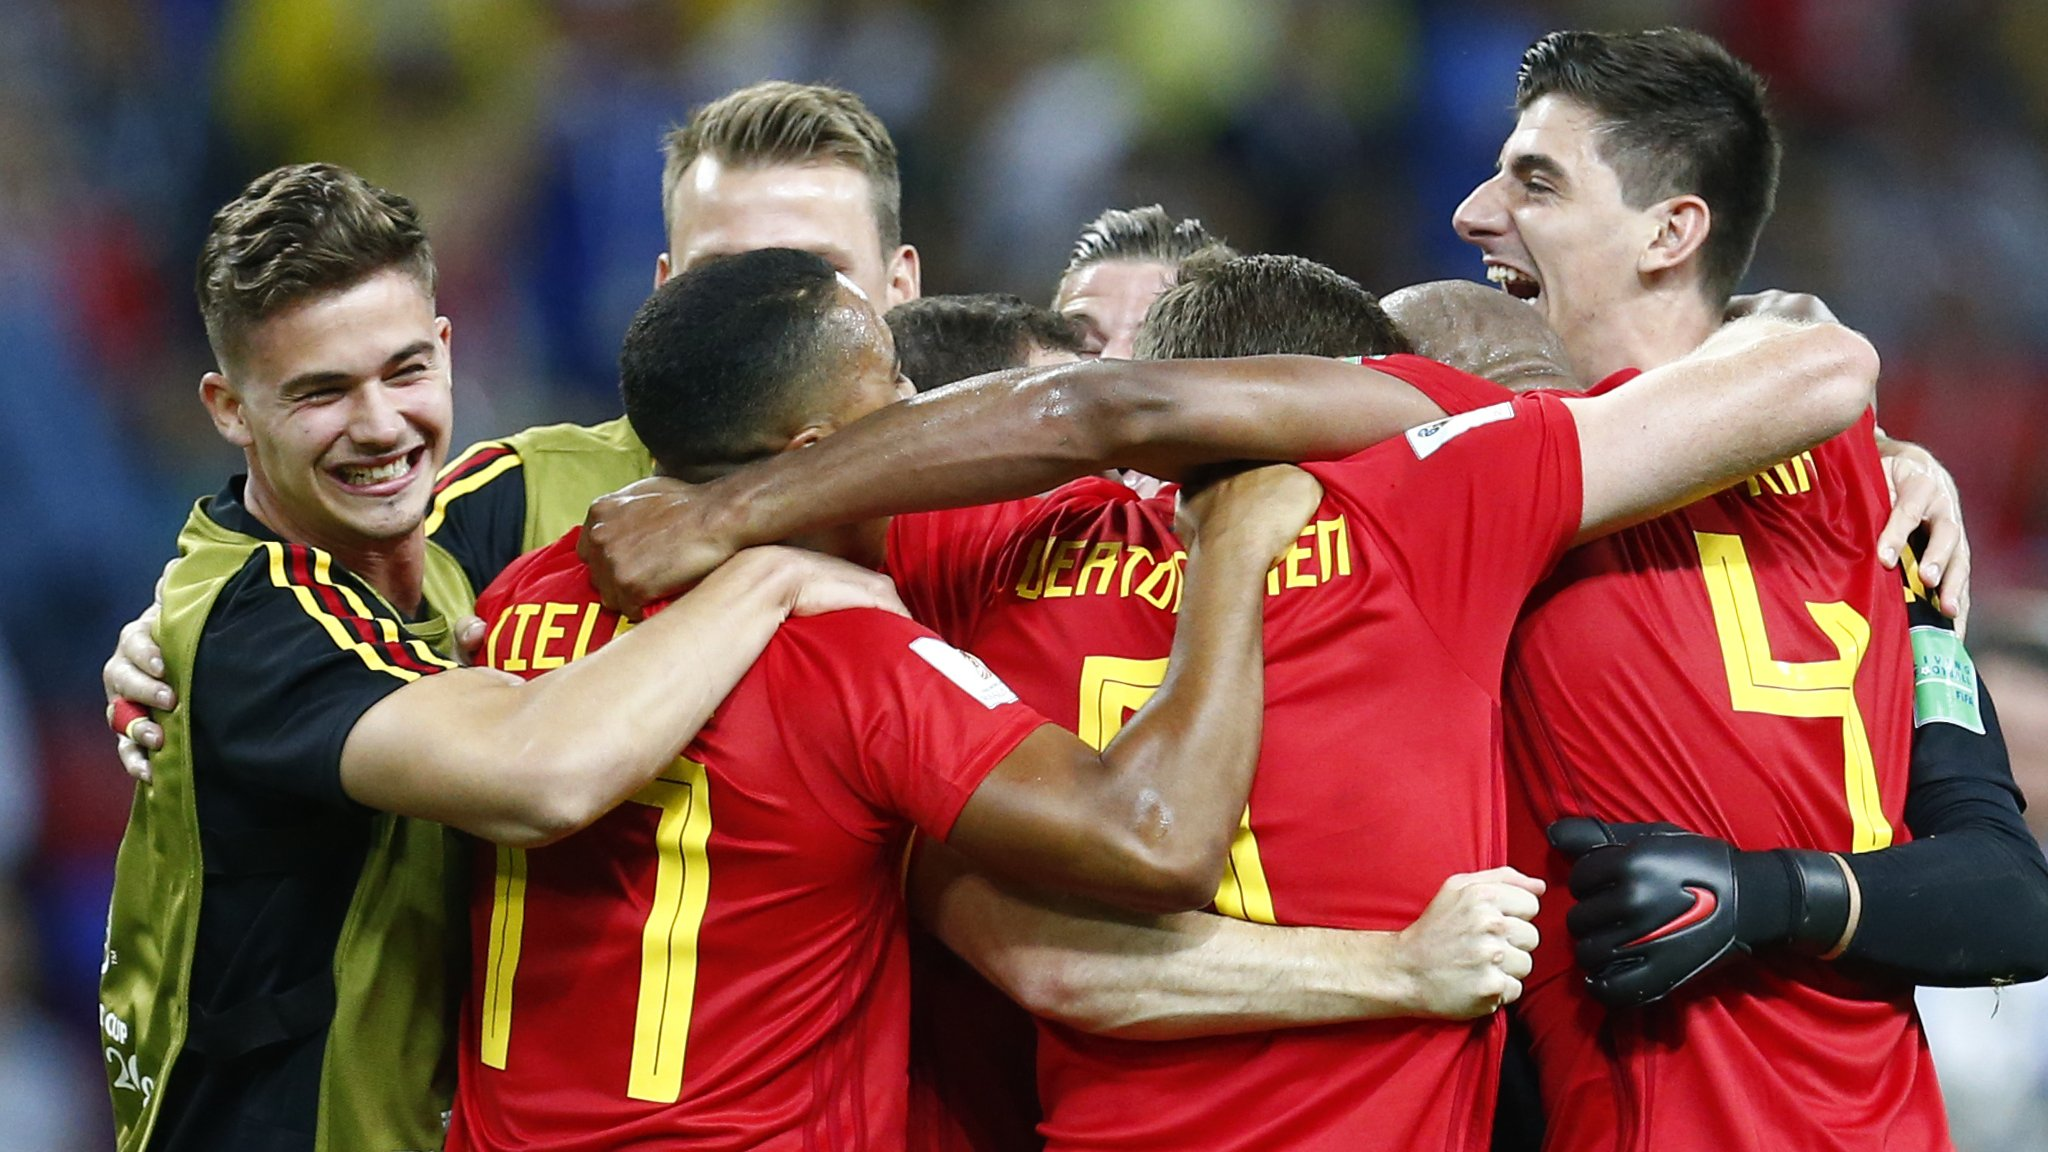 'The team to beat' - are Belgium favourites for the World Cup?